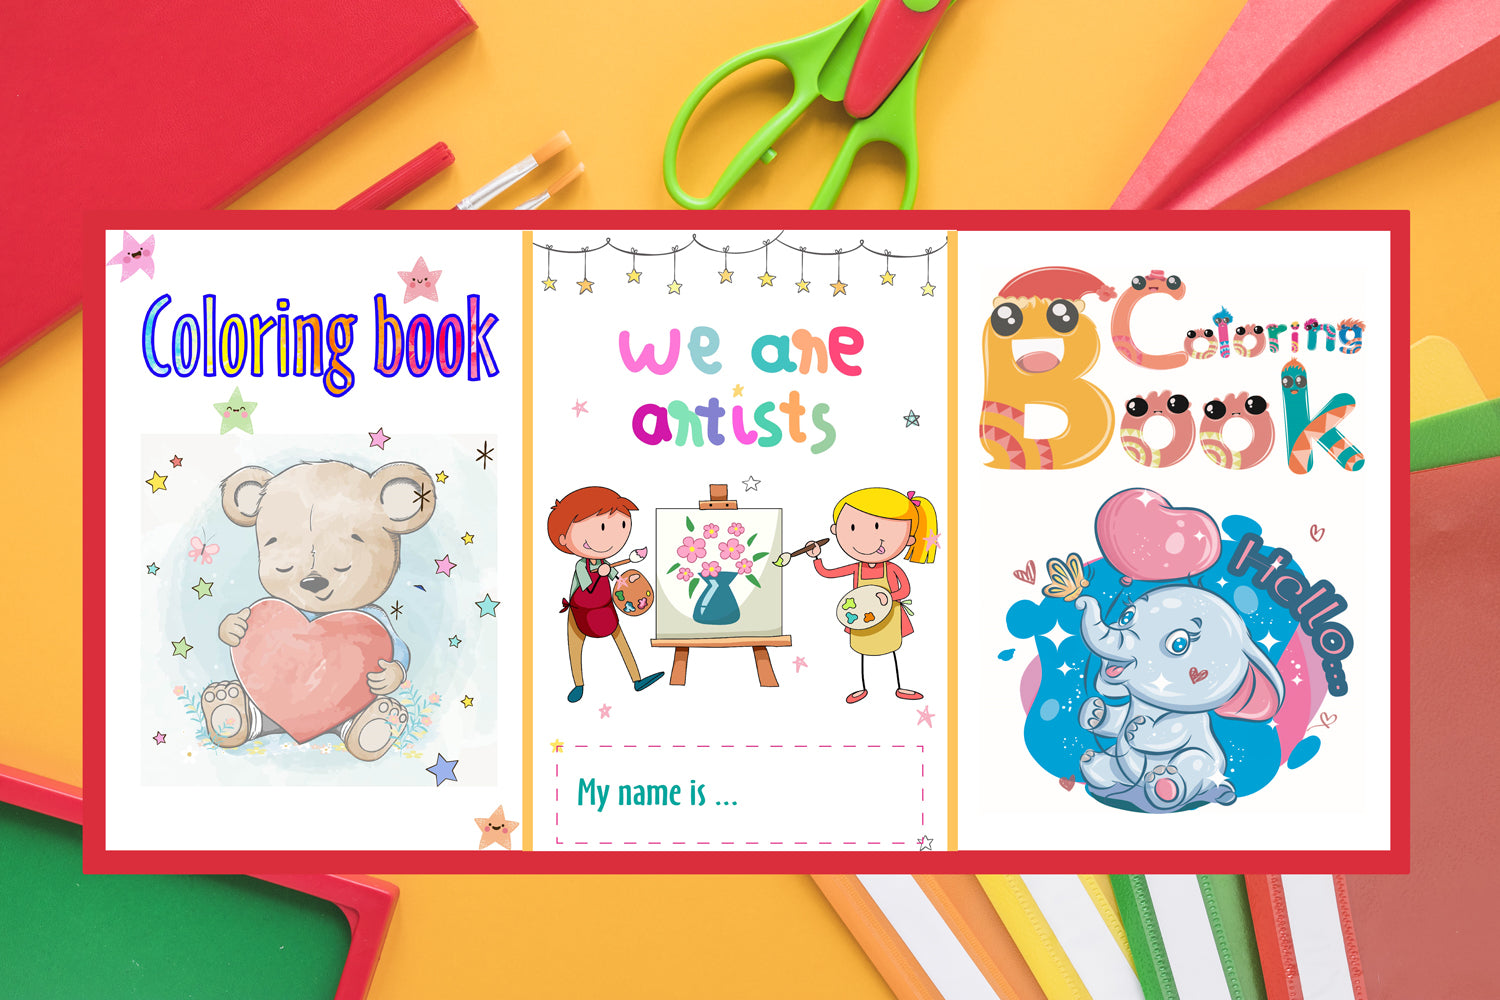 5 Kids Coloring book covers with organised layers for quick editing, Ready to print files